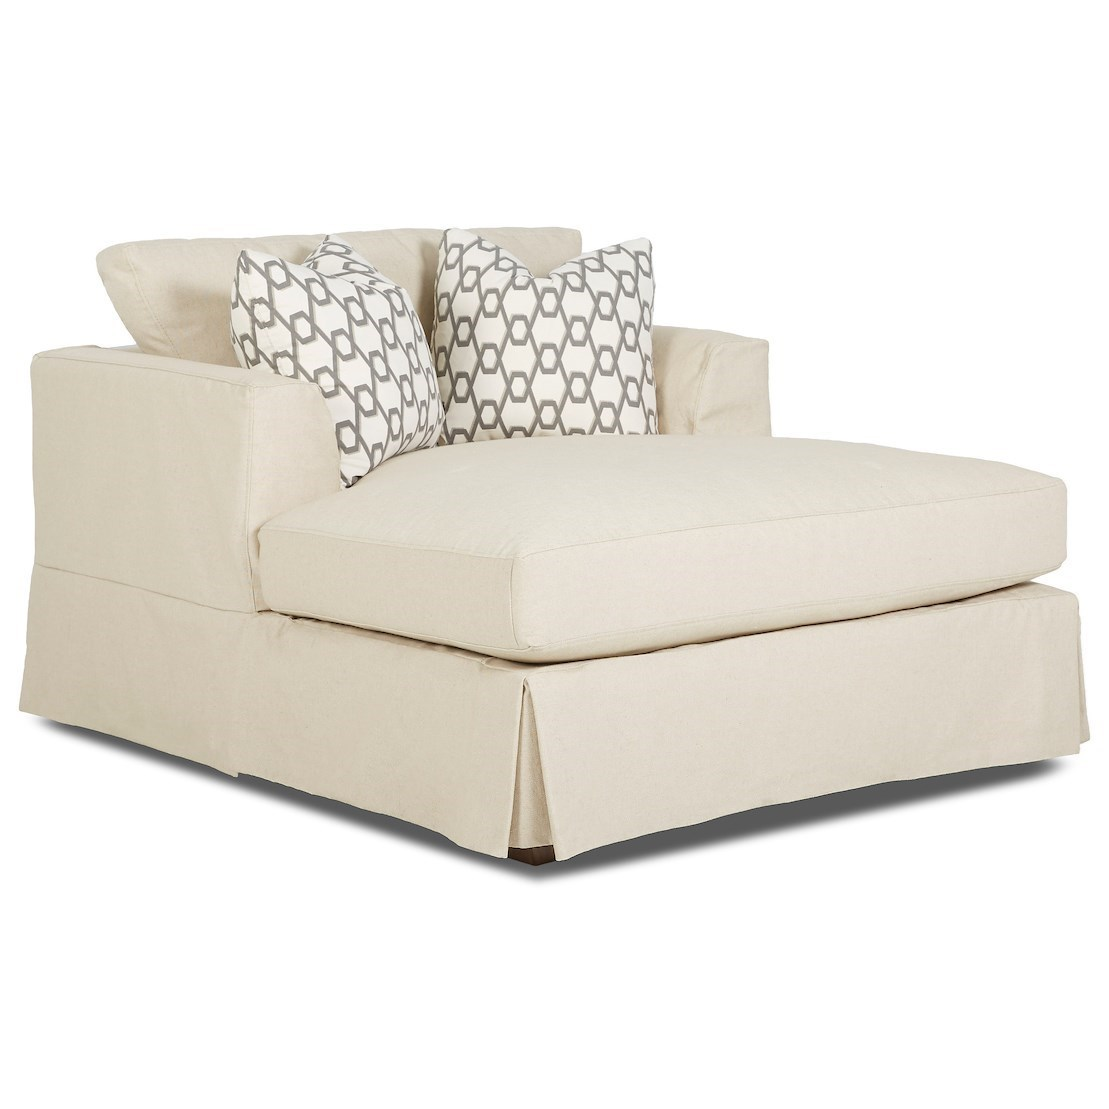 Bentley Slipcover Chaise by Klaussner at Value City Furniture